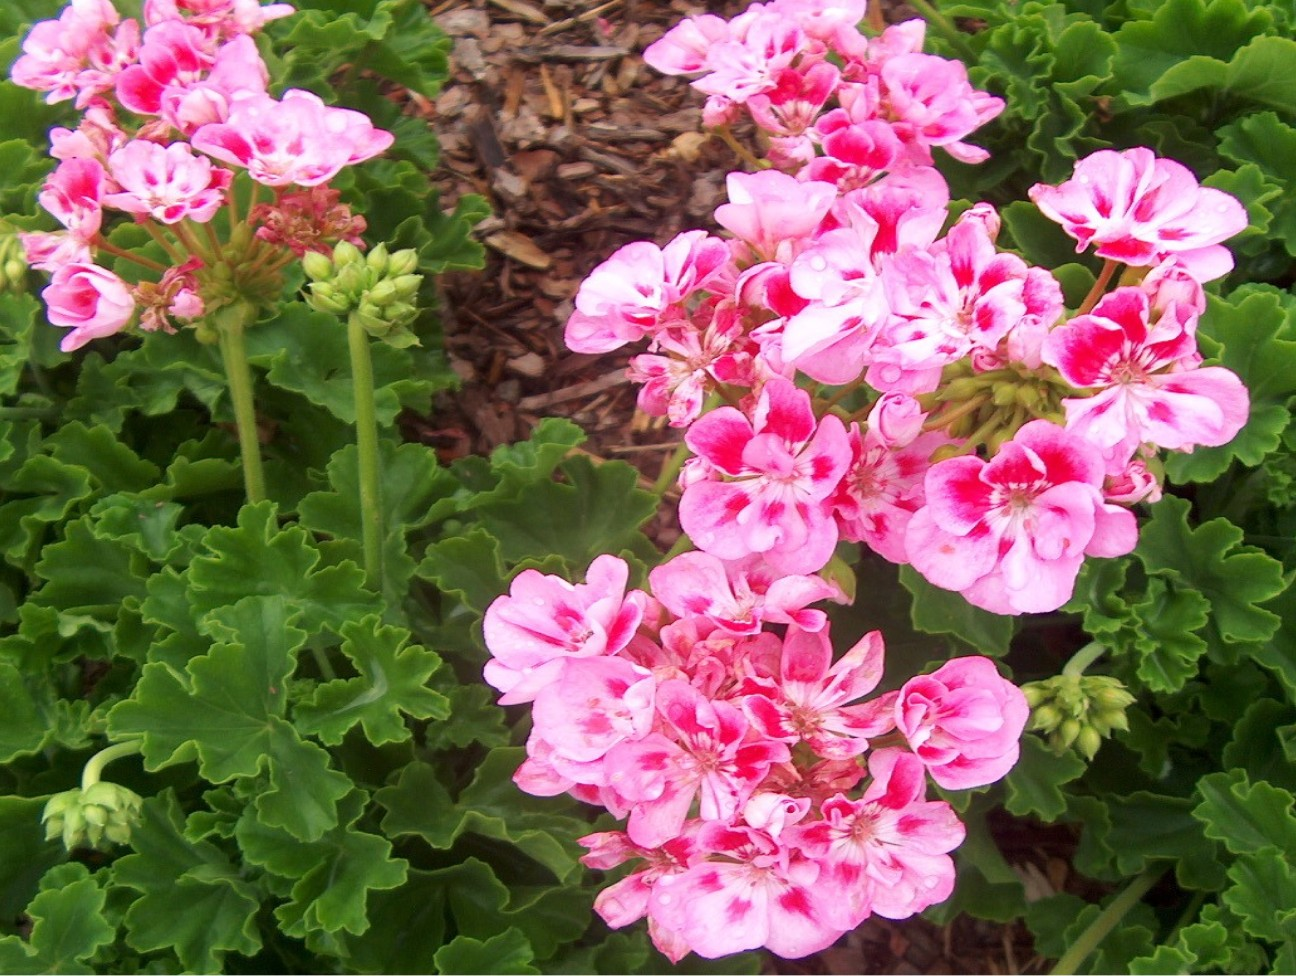 Pelargonium hortorum 'Allure Light Pink'  / Pelargonium hortorum 'Allure Light Pink'